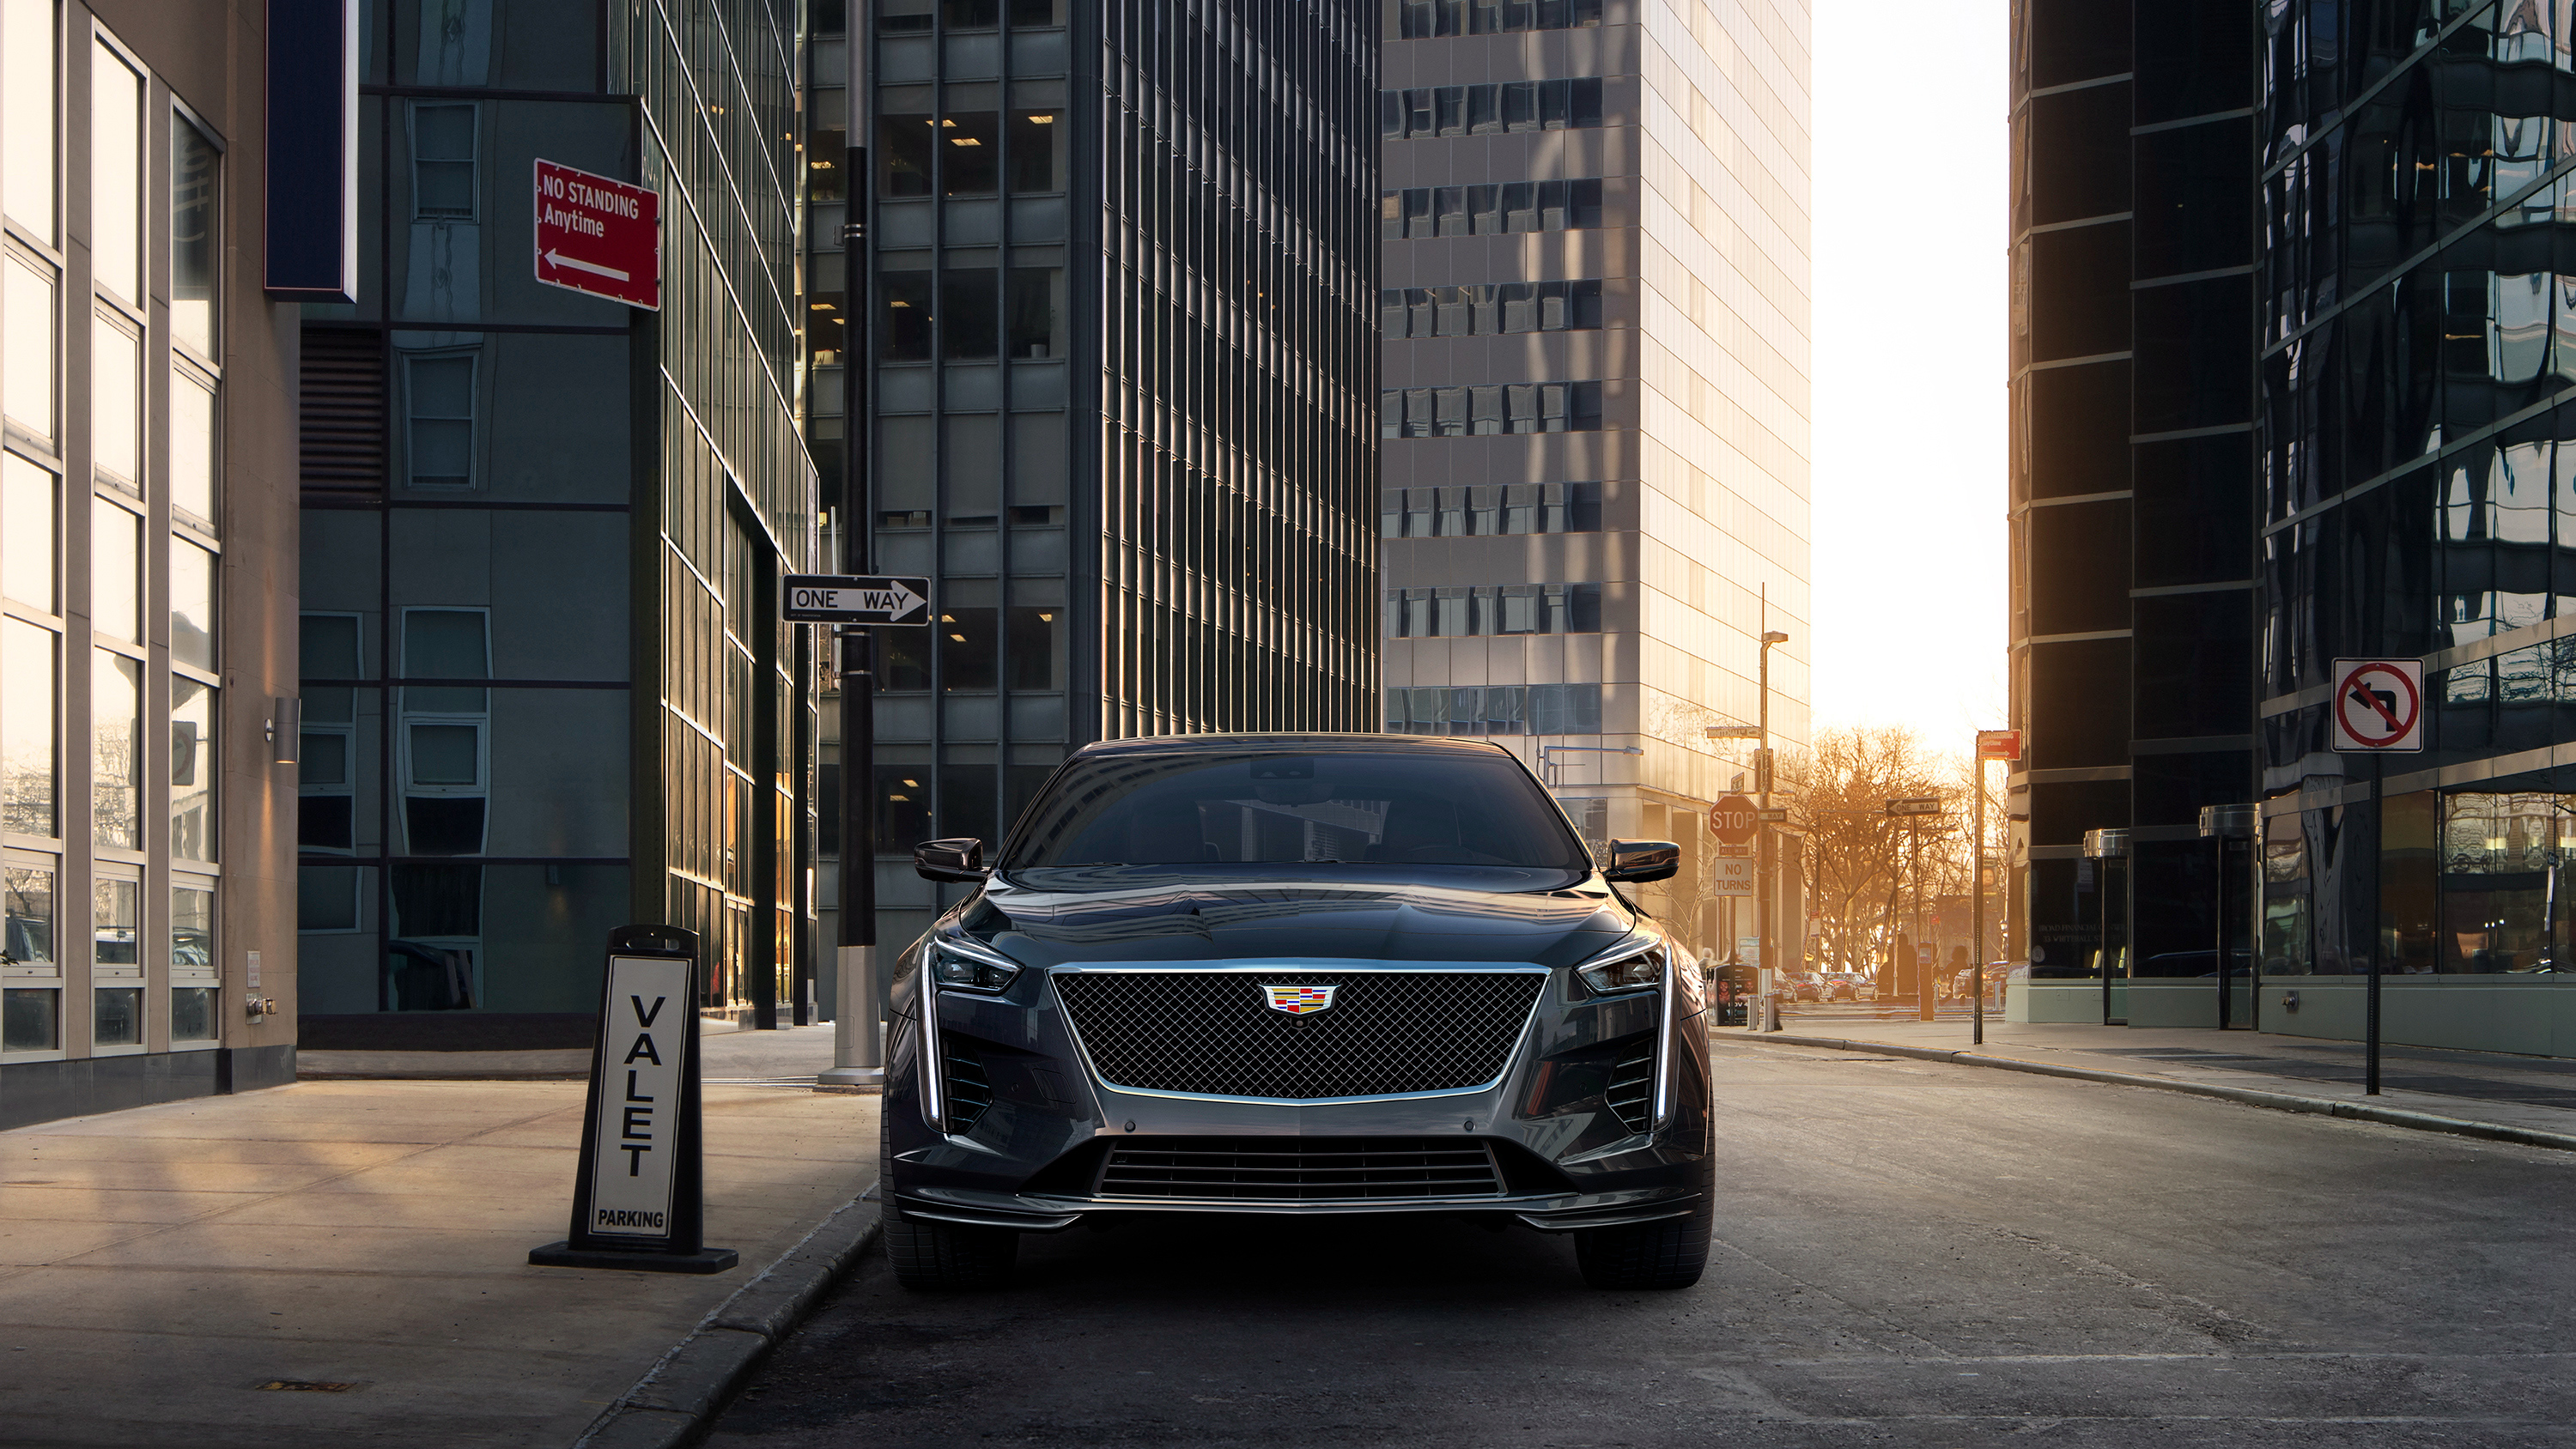 2019 Cadillac CT6 V Sport Wallpaper | HD Car Wallpapers ...